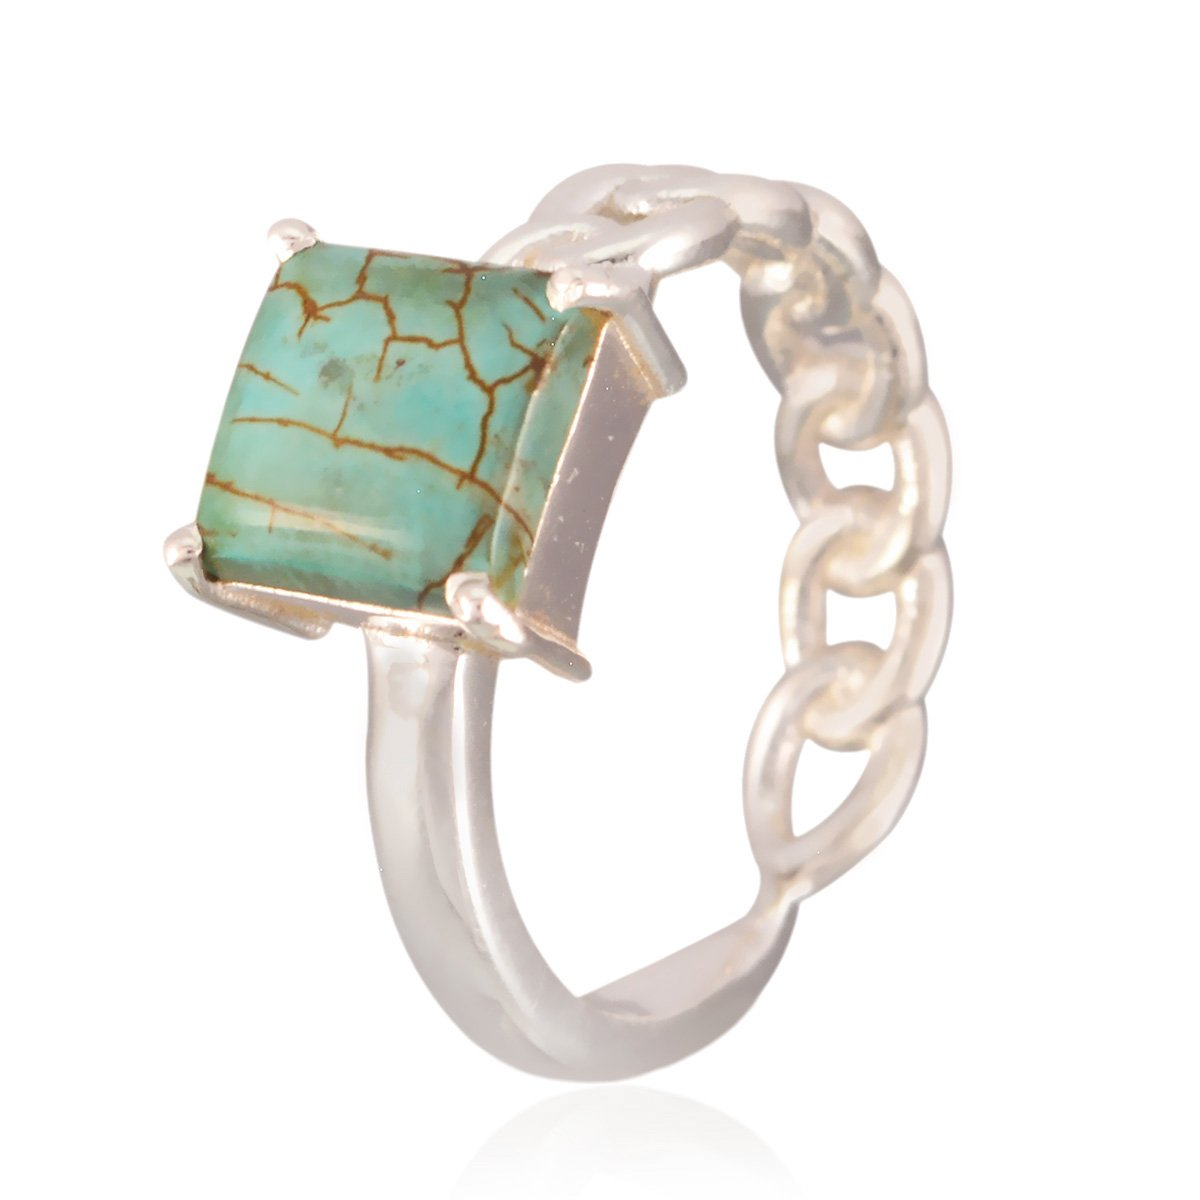 Jewellery Most Seller Gift for Mothers Day Cushion Cut Ring RGPL-Nice Gemstone Square cabochon Turquoise Rings 925 Silver Multi Colour Turquoise Nice Gemstone Ring